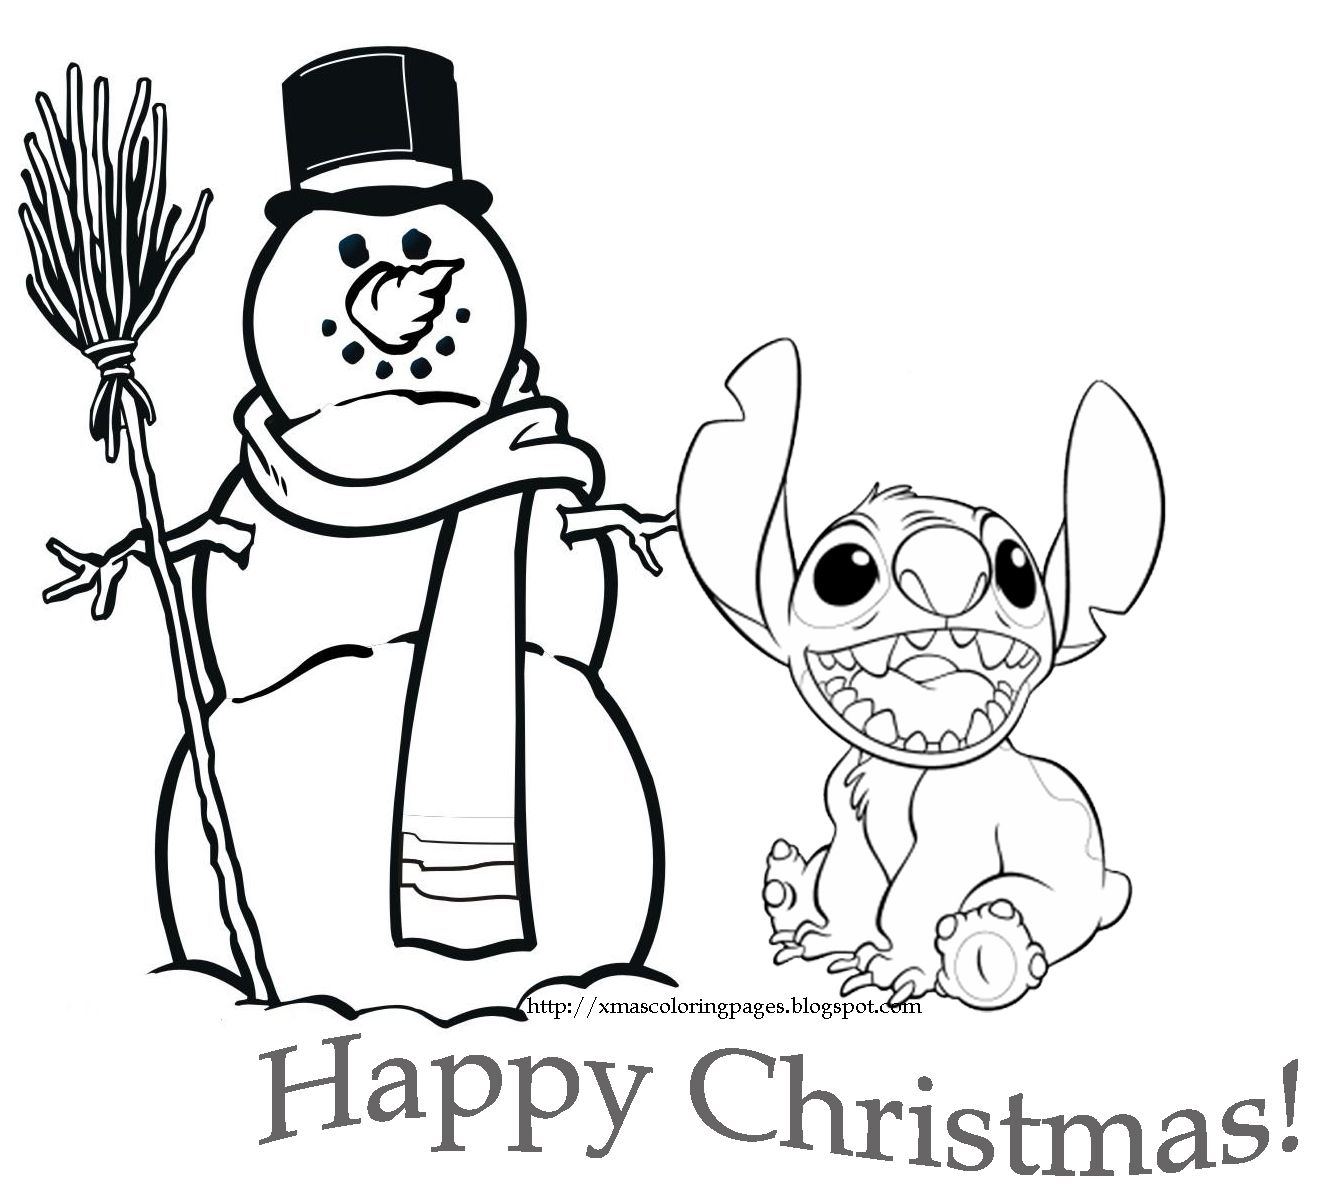 Christmas Colouring Pages Cute With Pin By Jimmy Nail On Pinterest Coloring